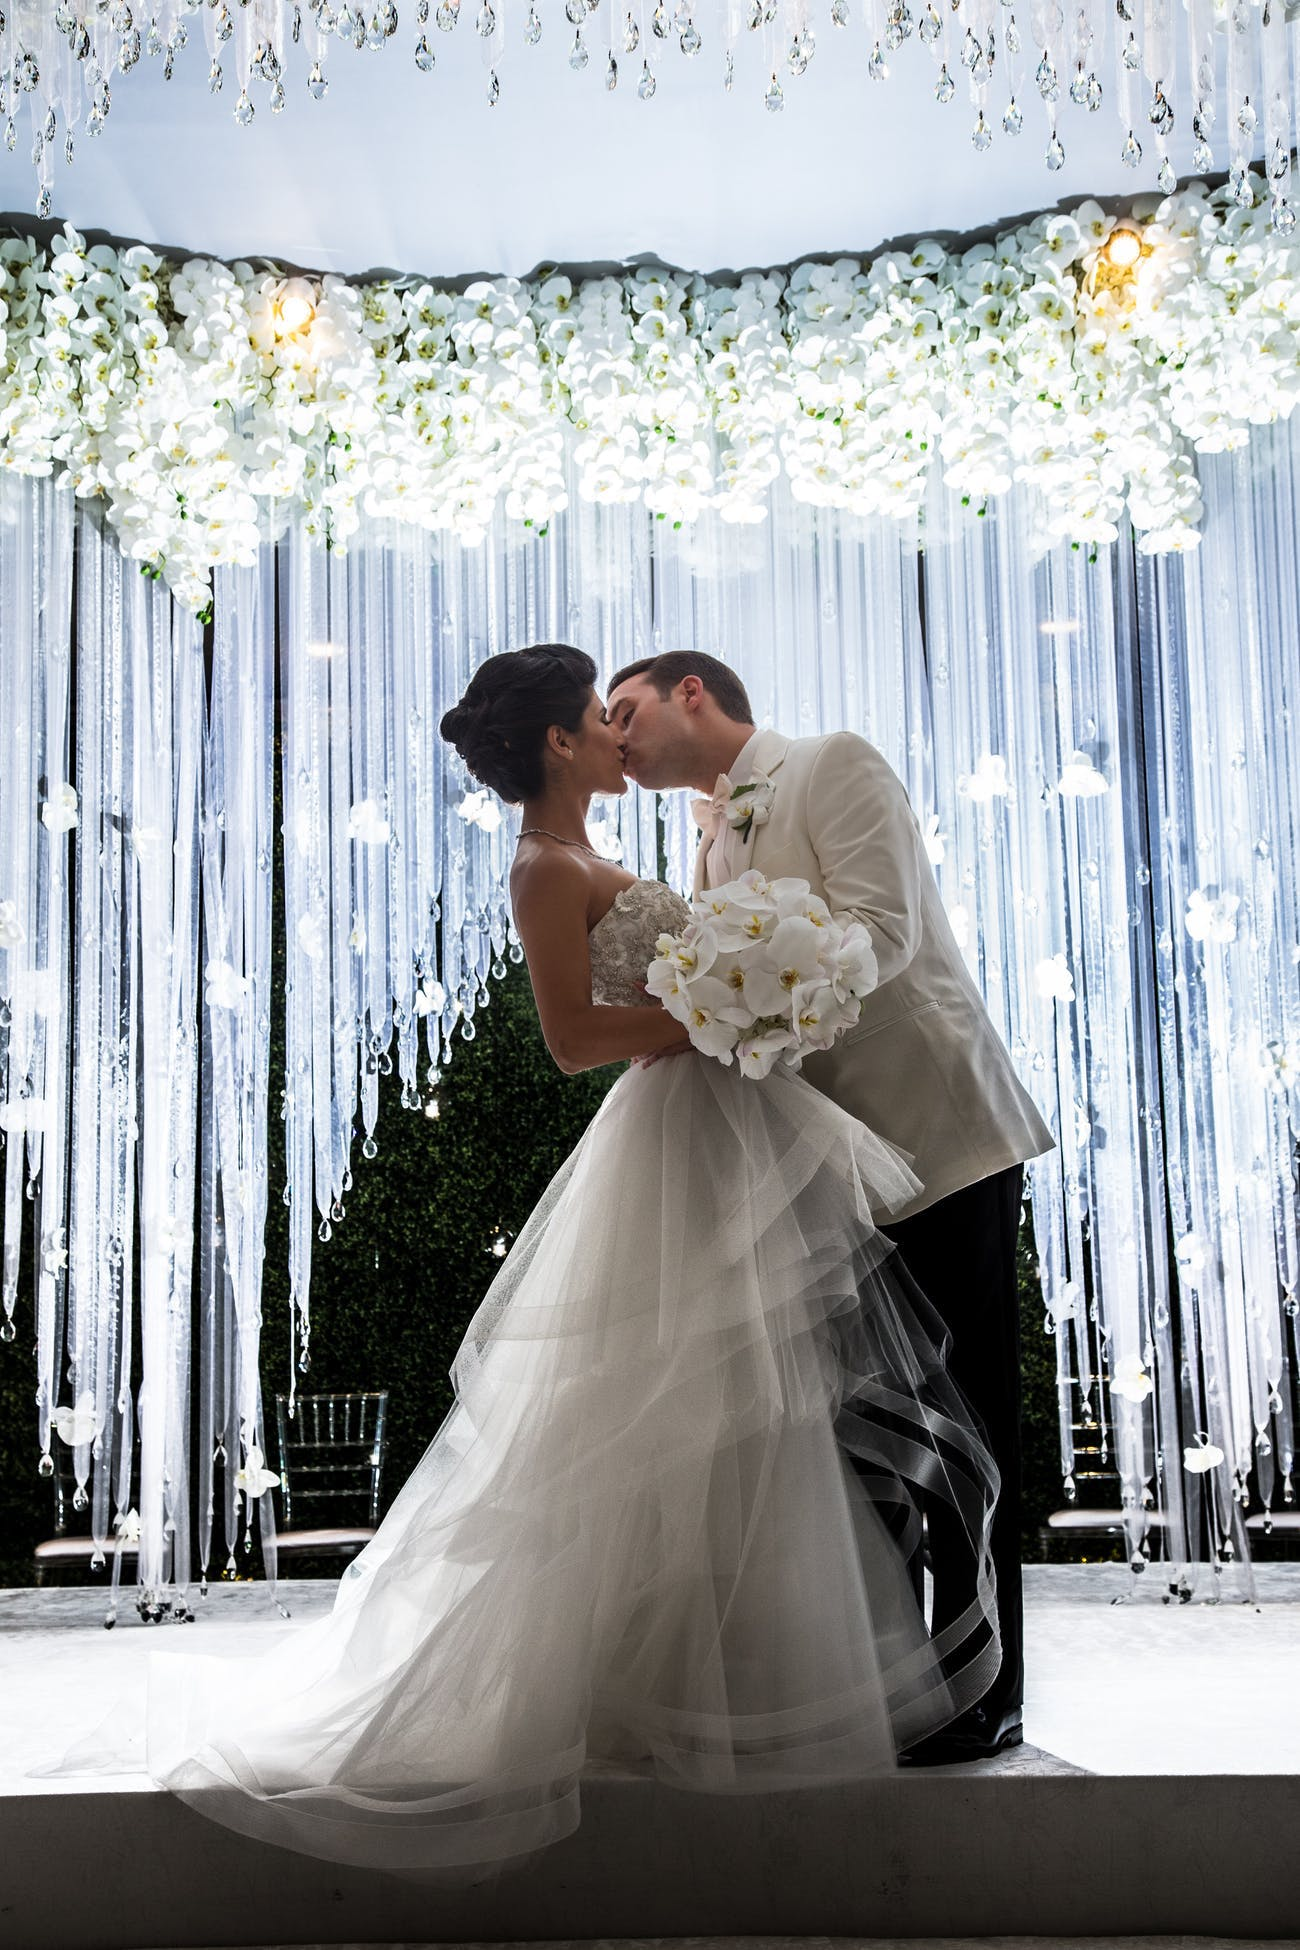 Bride and Groom Kiss in Front of Shimmering Tassel Backdrop Crowned with White Florals   PartySlate